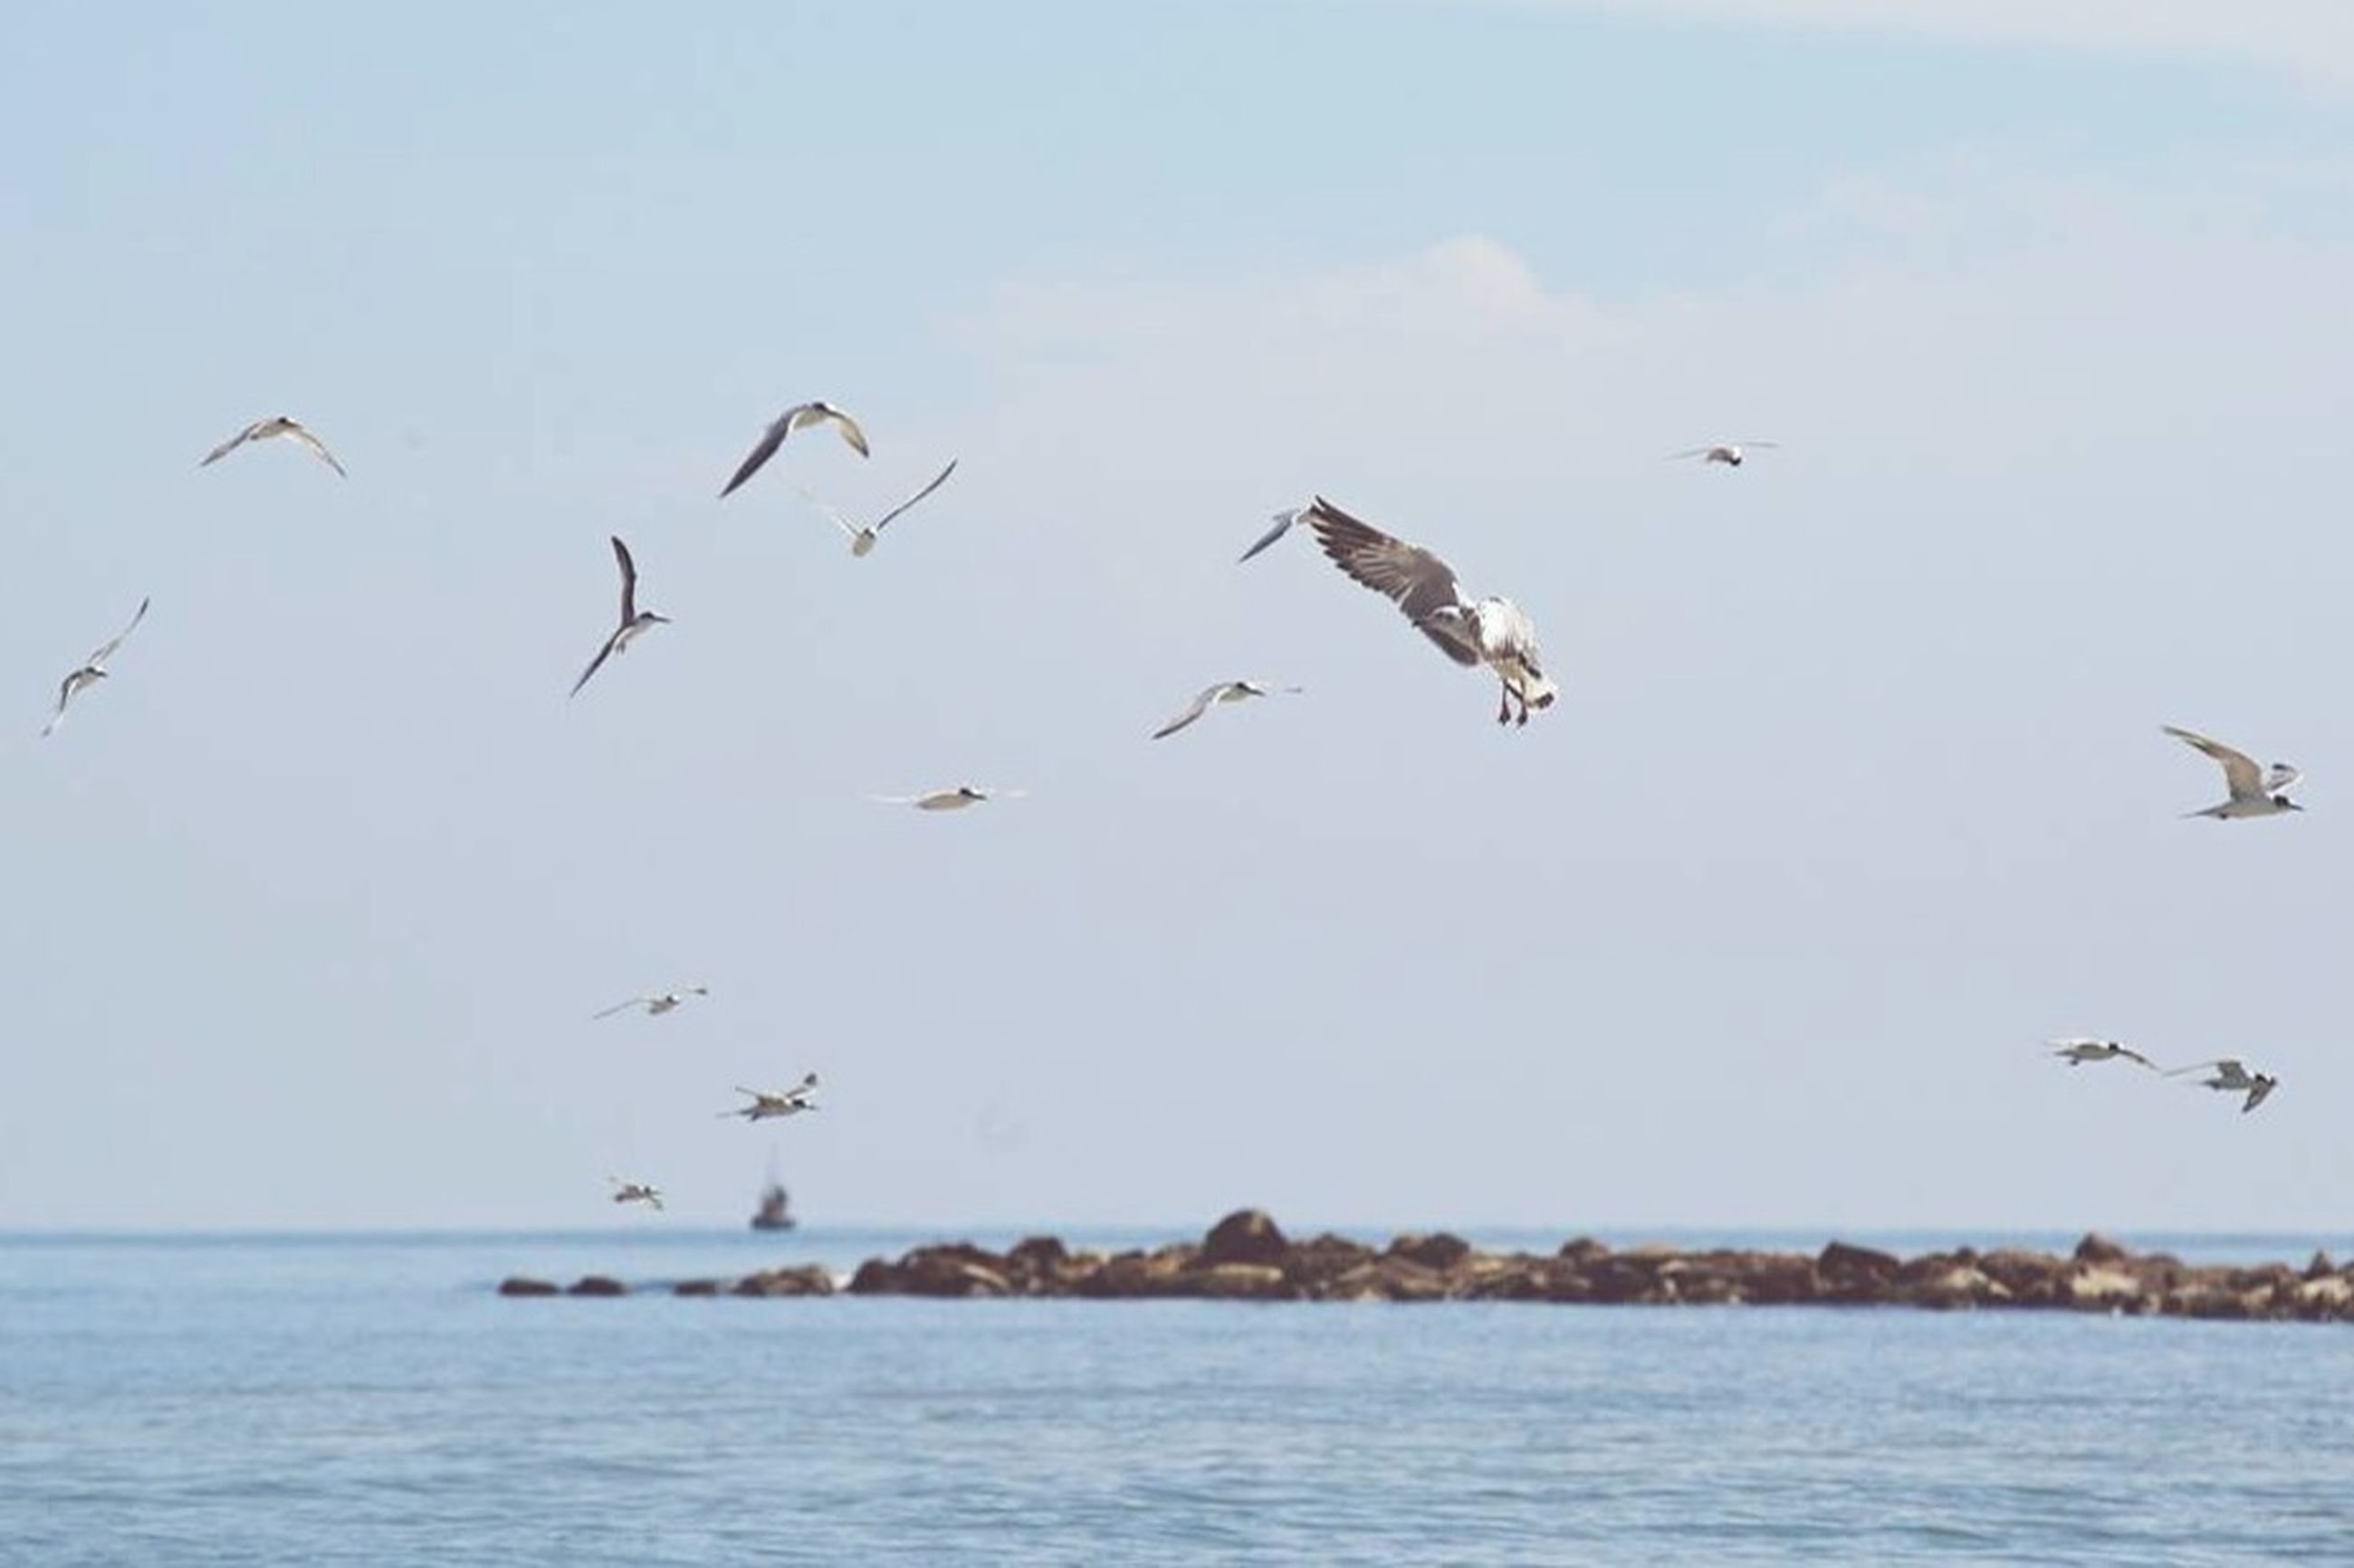 bird, flying, animals in the wild, animal themes, water, sea, wildlife, waterfront, seagull, spread wings, mid-air, flock of birds, sky, horizon over water, nature, medium group of animals, beauty in nature, scenics, day